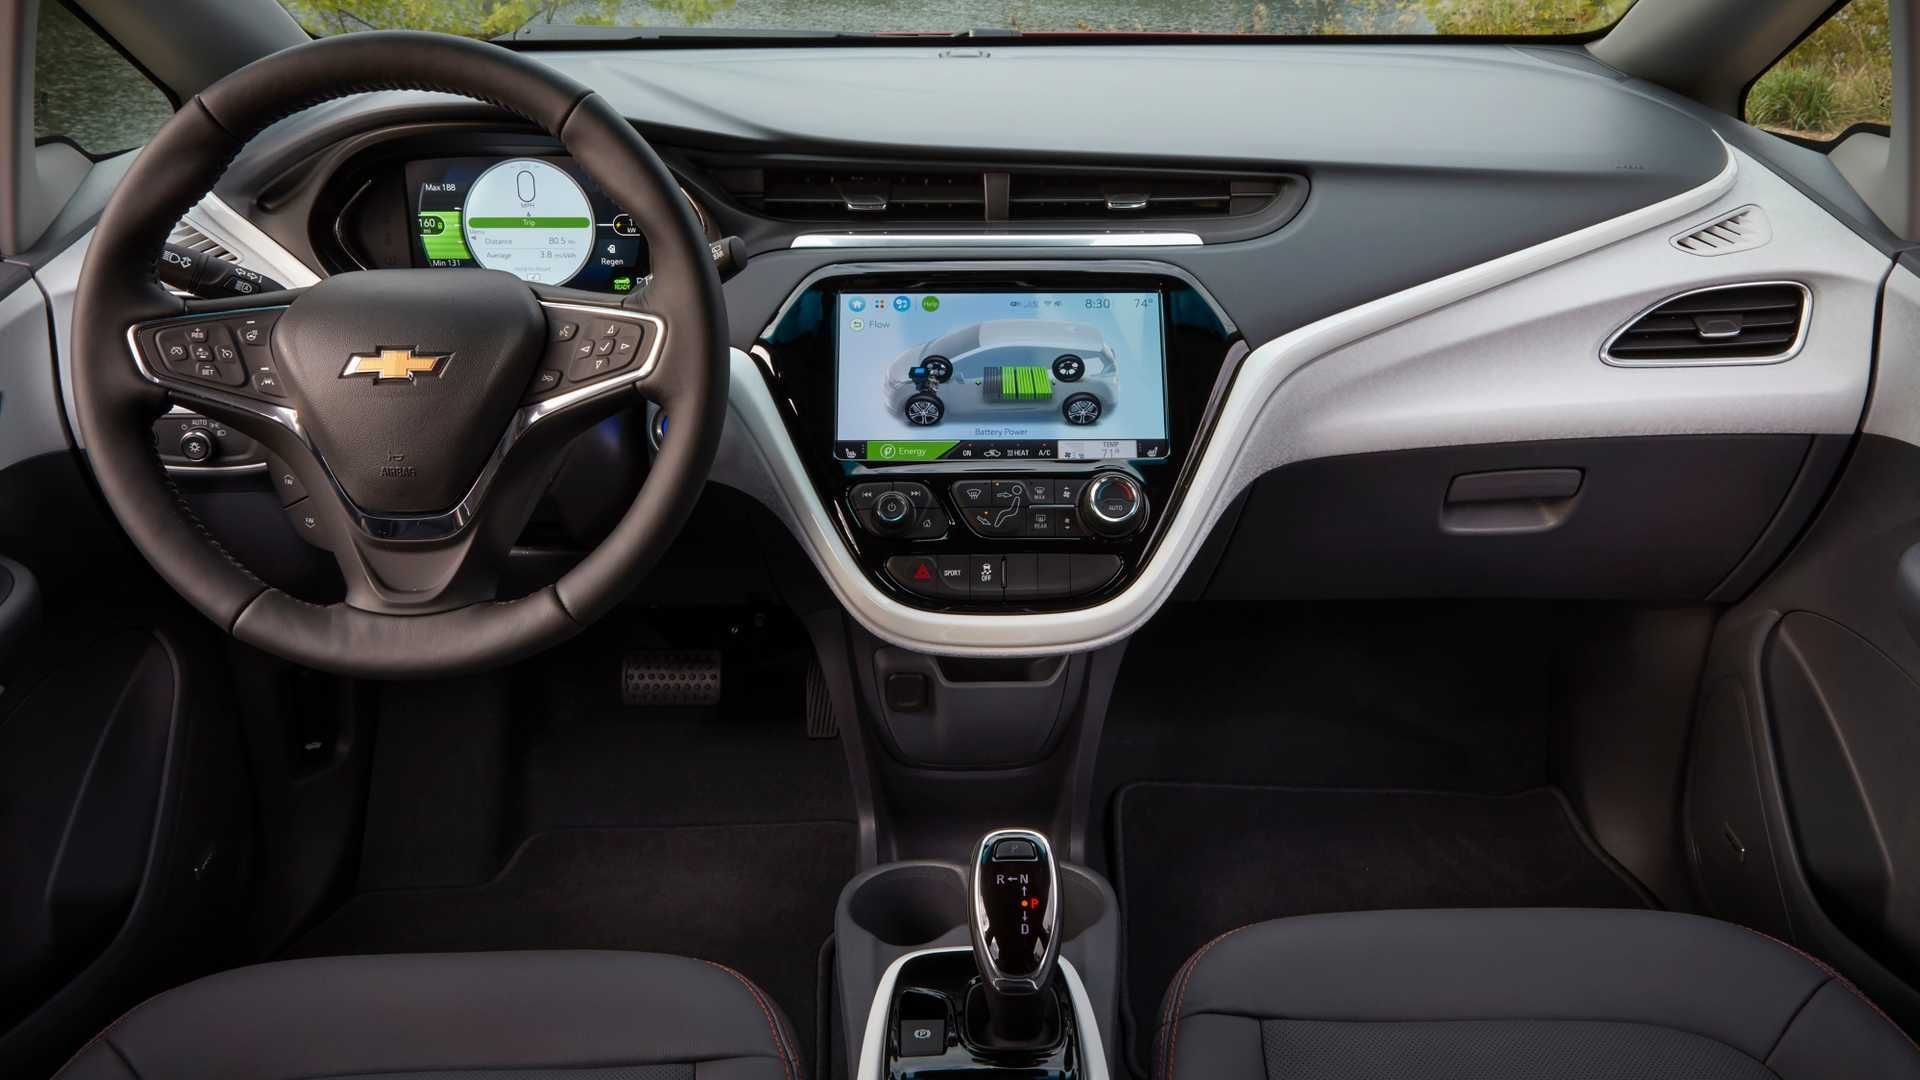 Chevrolet Volt 2021 Footage Chevrolet Volt 2021 Chevy Volt 2021 Review Chevrolet Volt 2021 Like Ford S Mustang Was Relat In 2020 Chevrolet Volt Chevrolet Chevy Volt